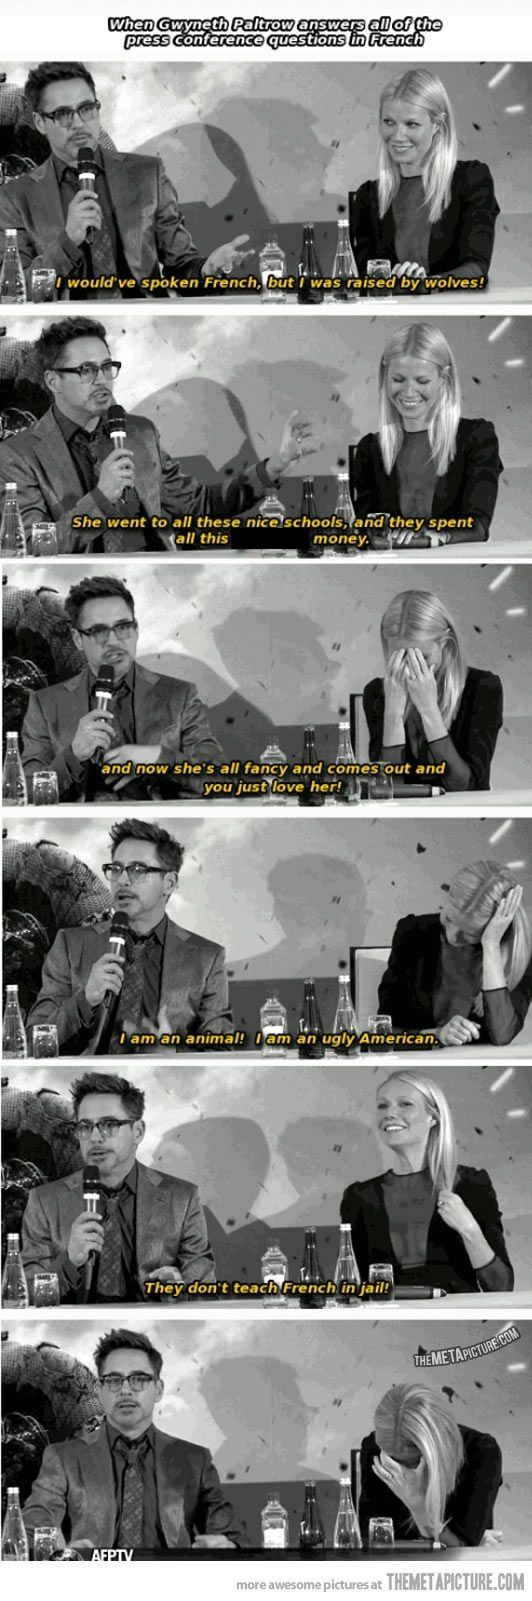 RDJ Can't speak French